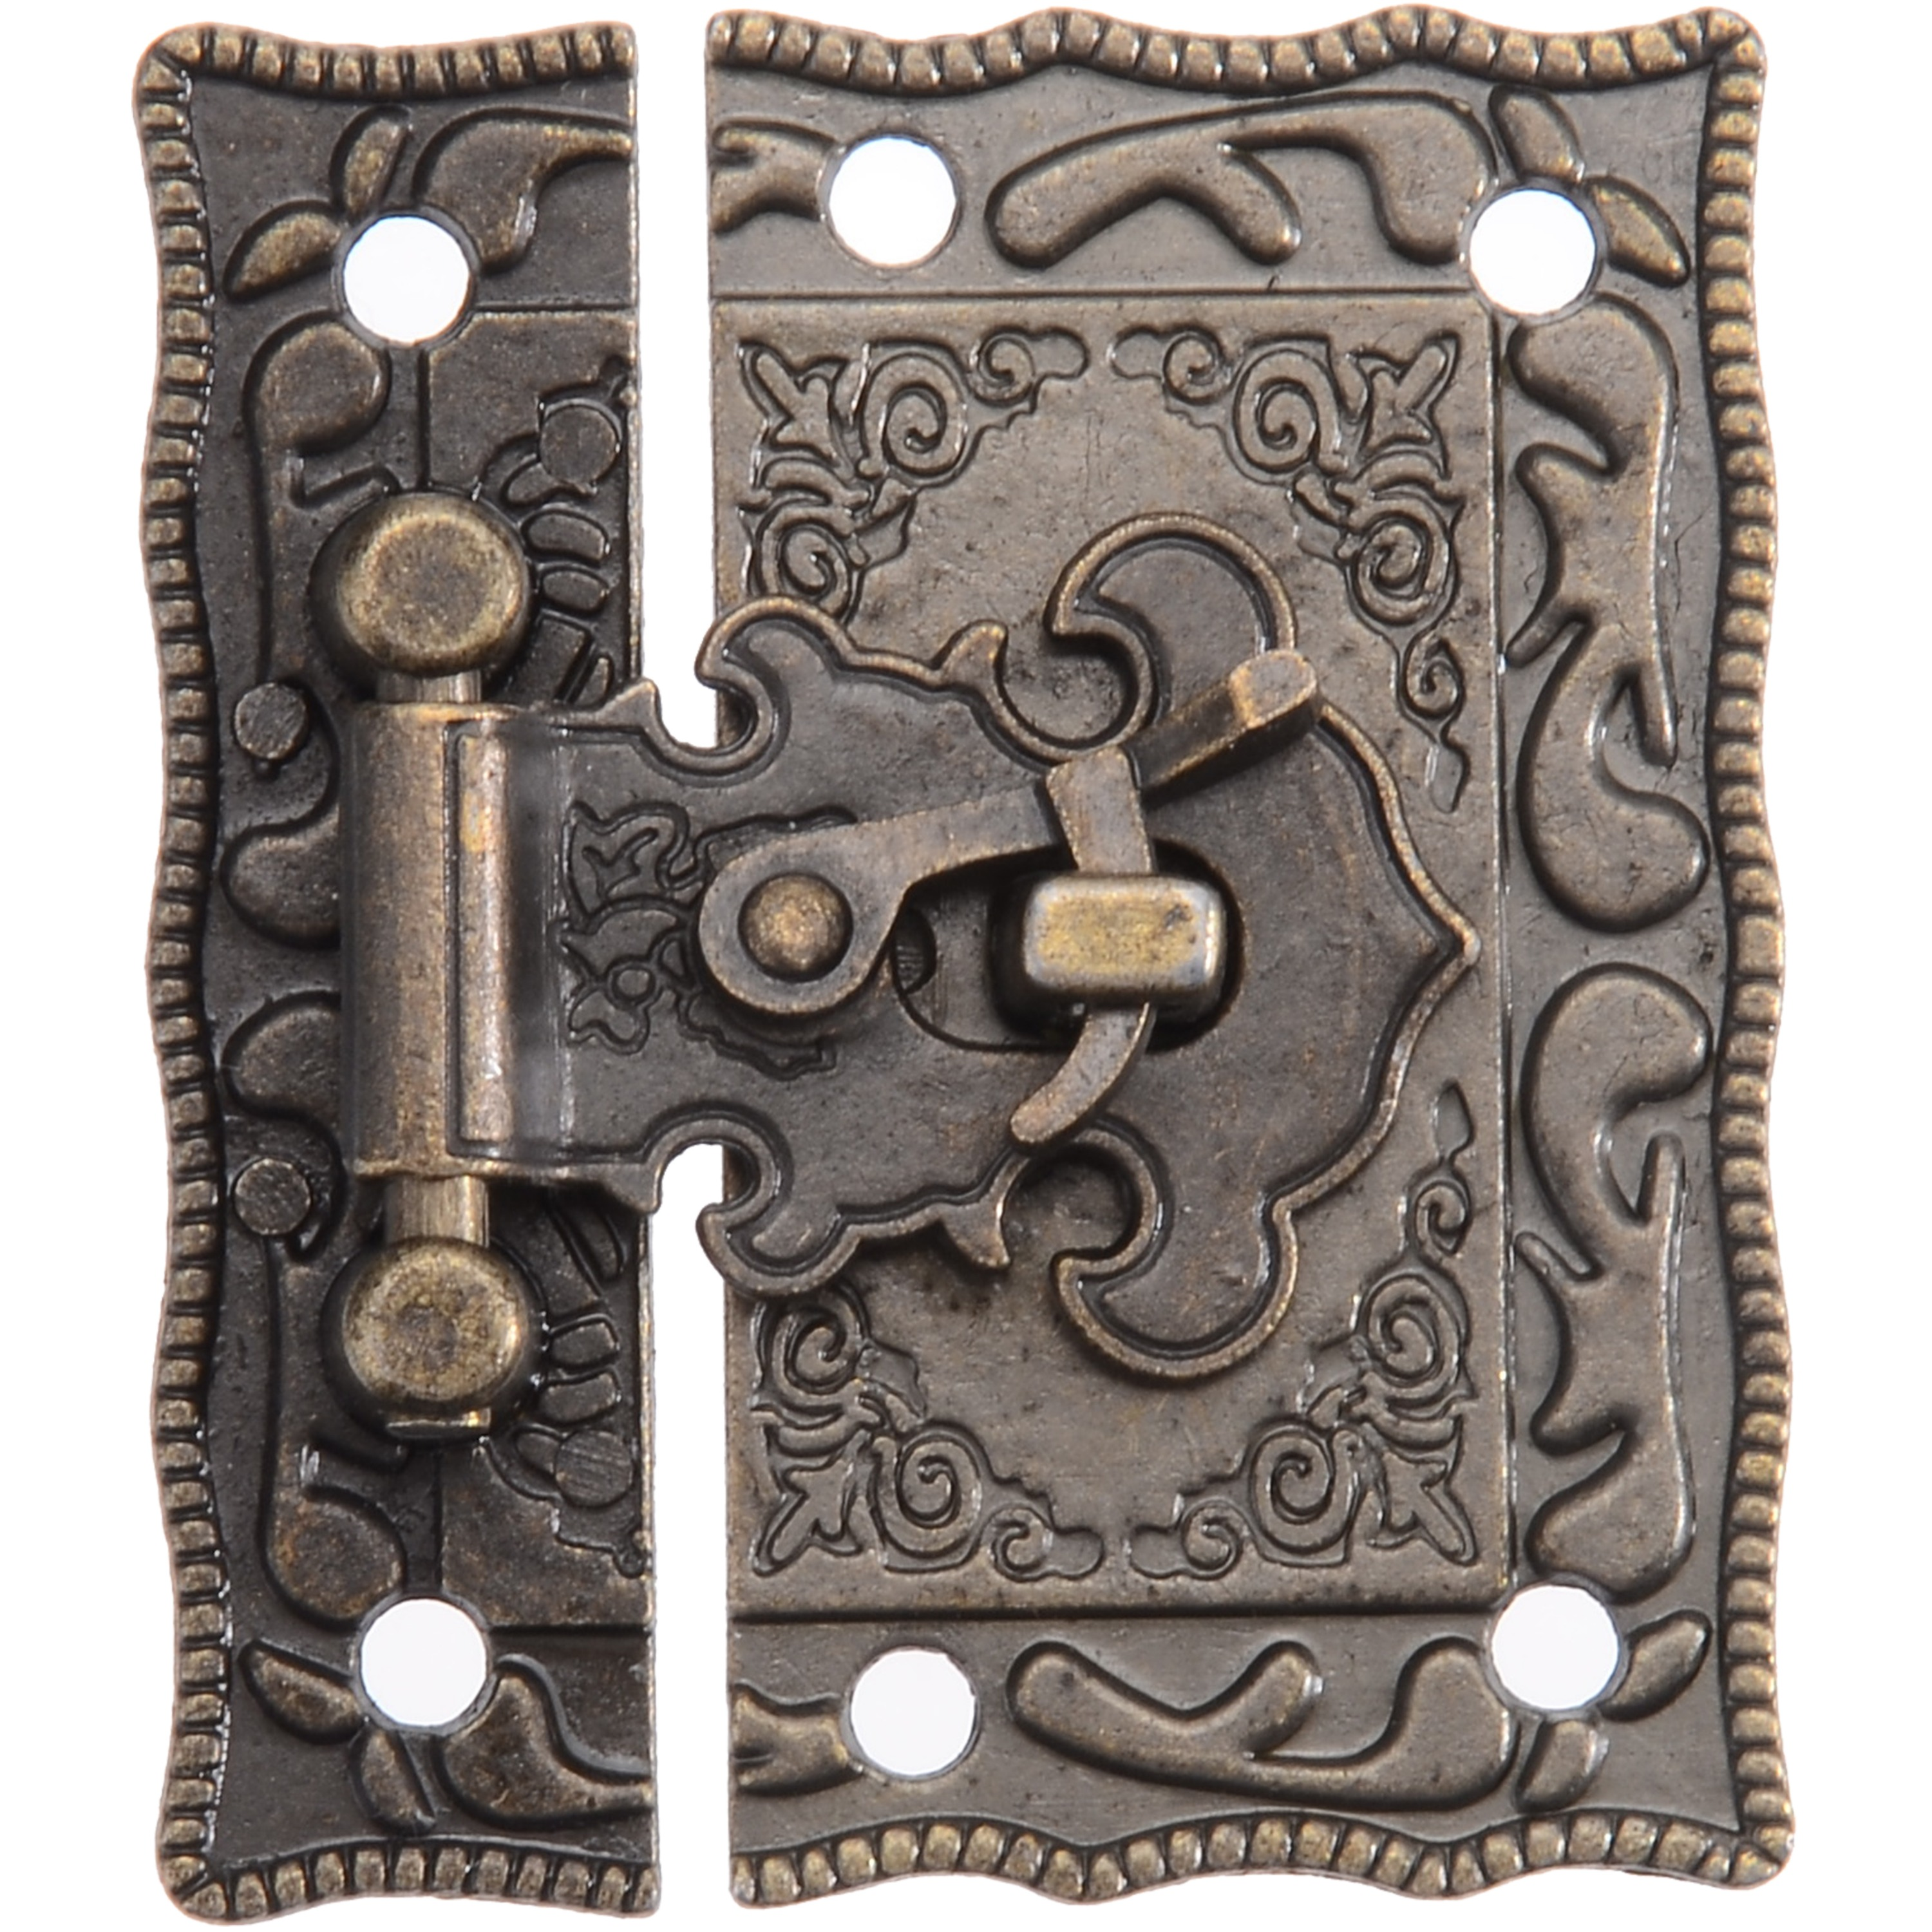 Antique Jewelry Wooden Box Decorative Latch Hasp Toggle Lock Security Safes Hasps Hardware Tools Accessories